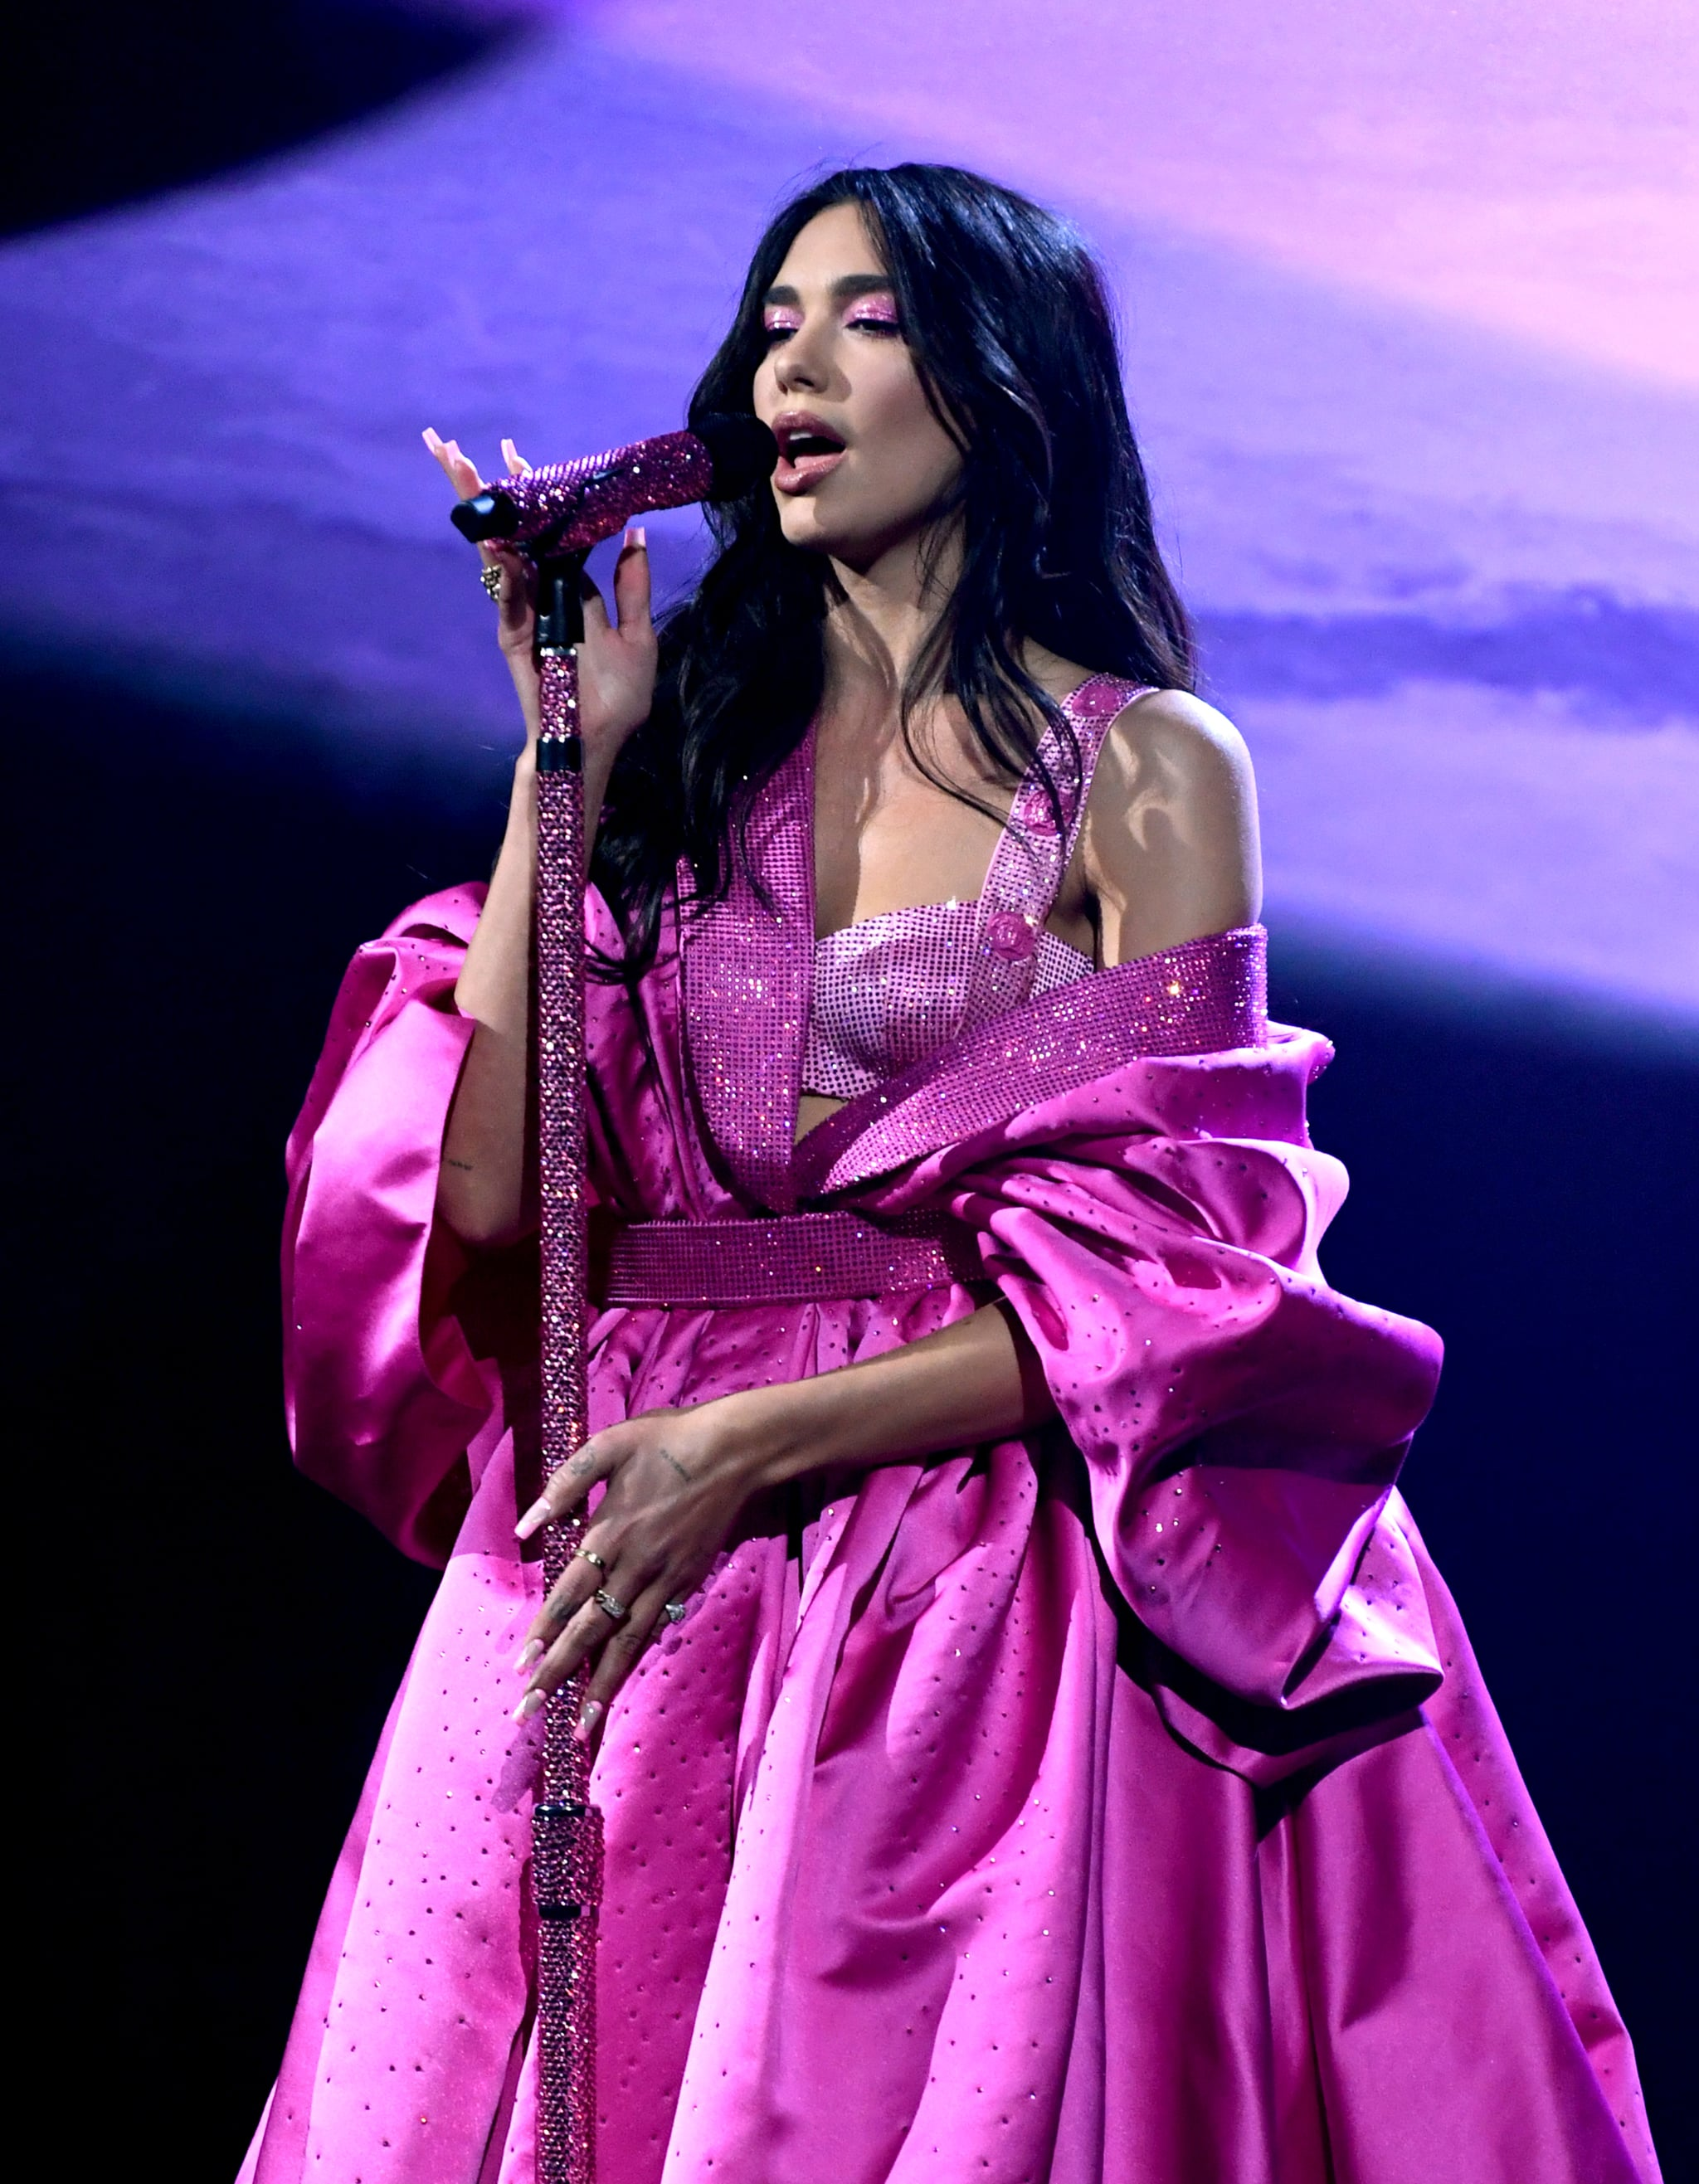 LOS ANGELES, CALIFORNIA: In this image released on March 14, Dua Lipa performs onstage during the 63rd Annual GRAMMY Awards at Los Angeles Convention Centre in Los Angeles, California and broadcast on March 14, 2021. (Photo by Kevin Winter/Getty Images for The Recording Academy)